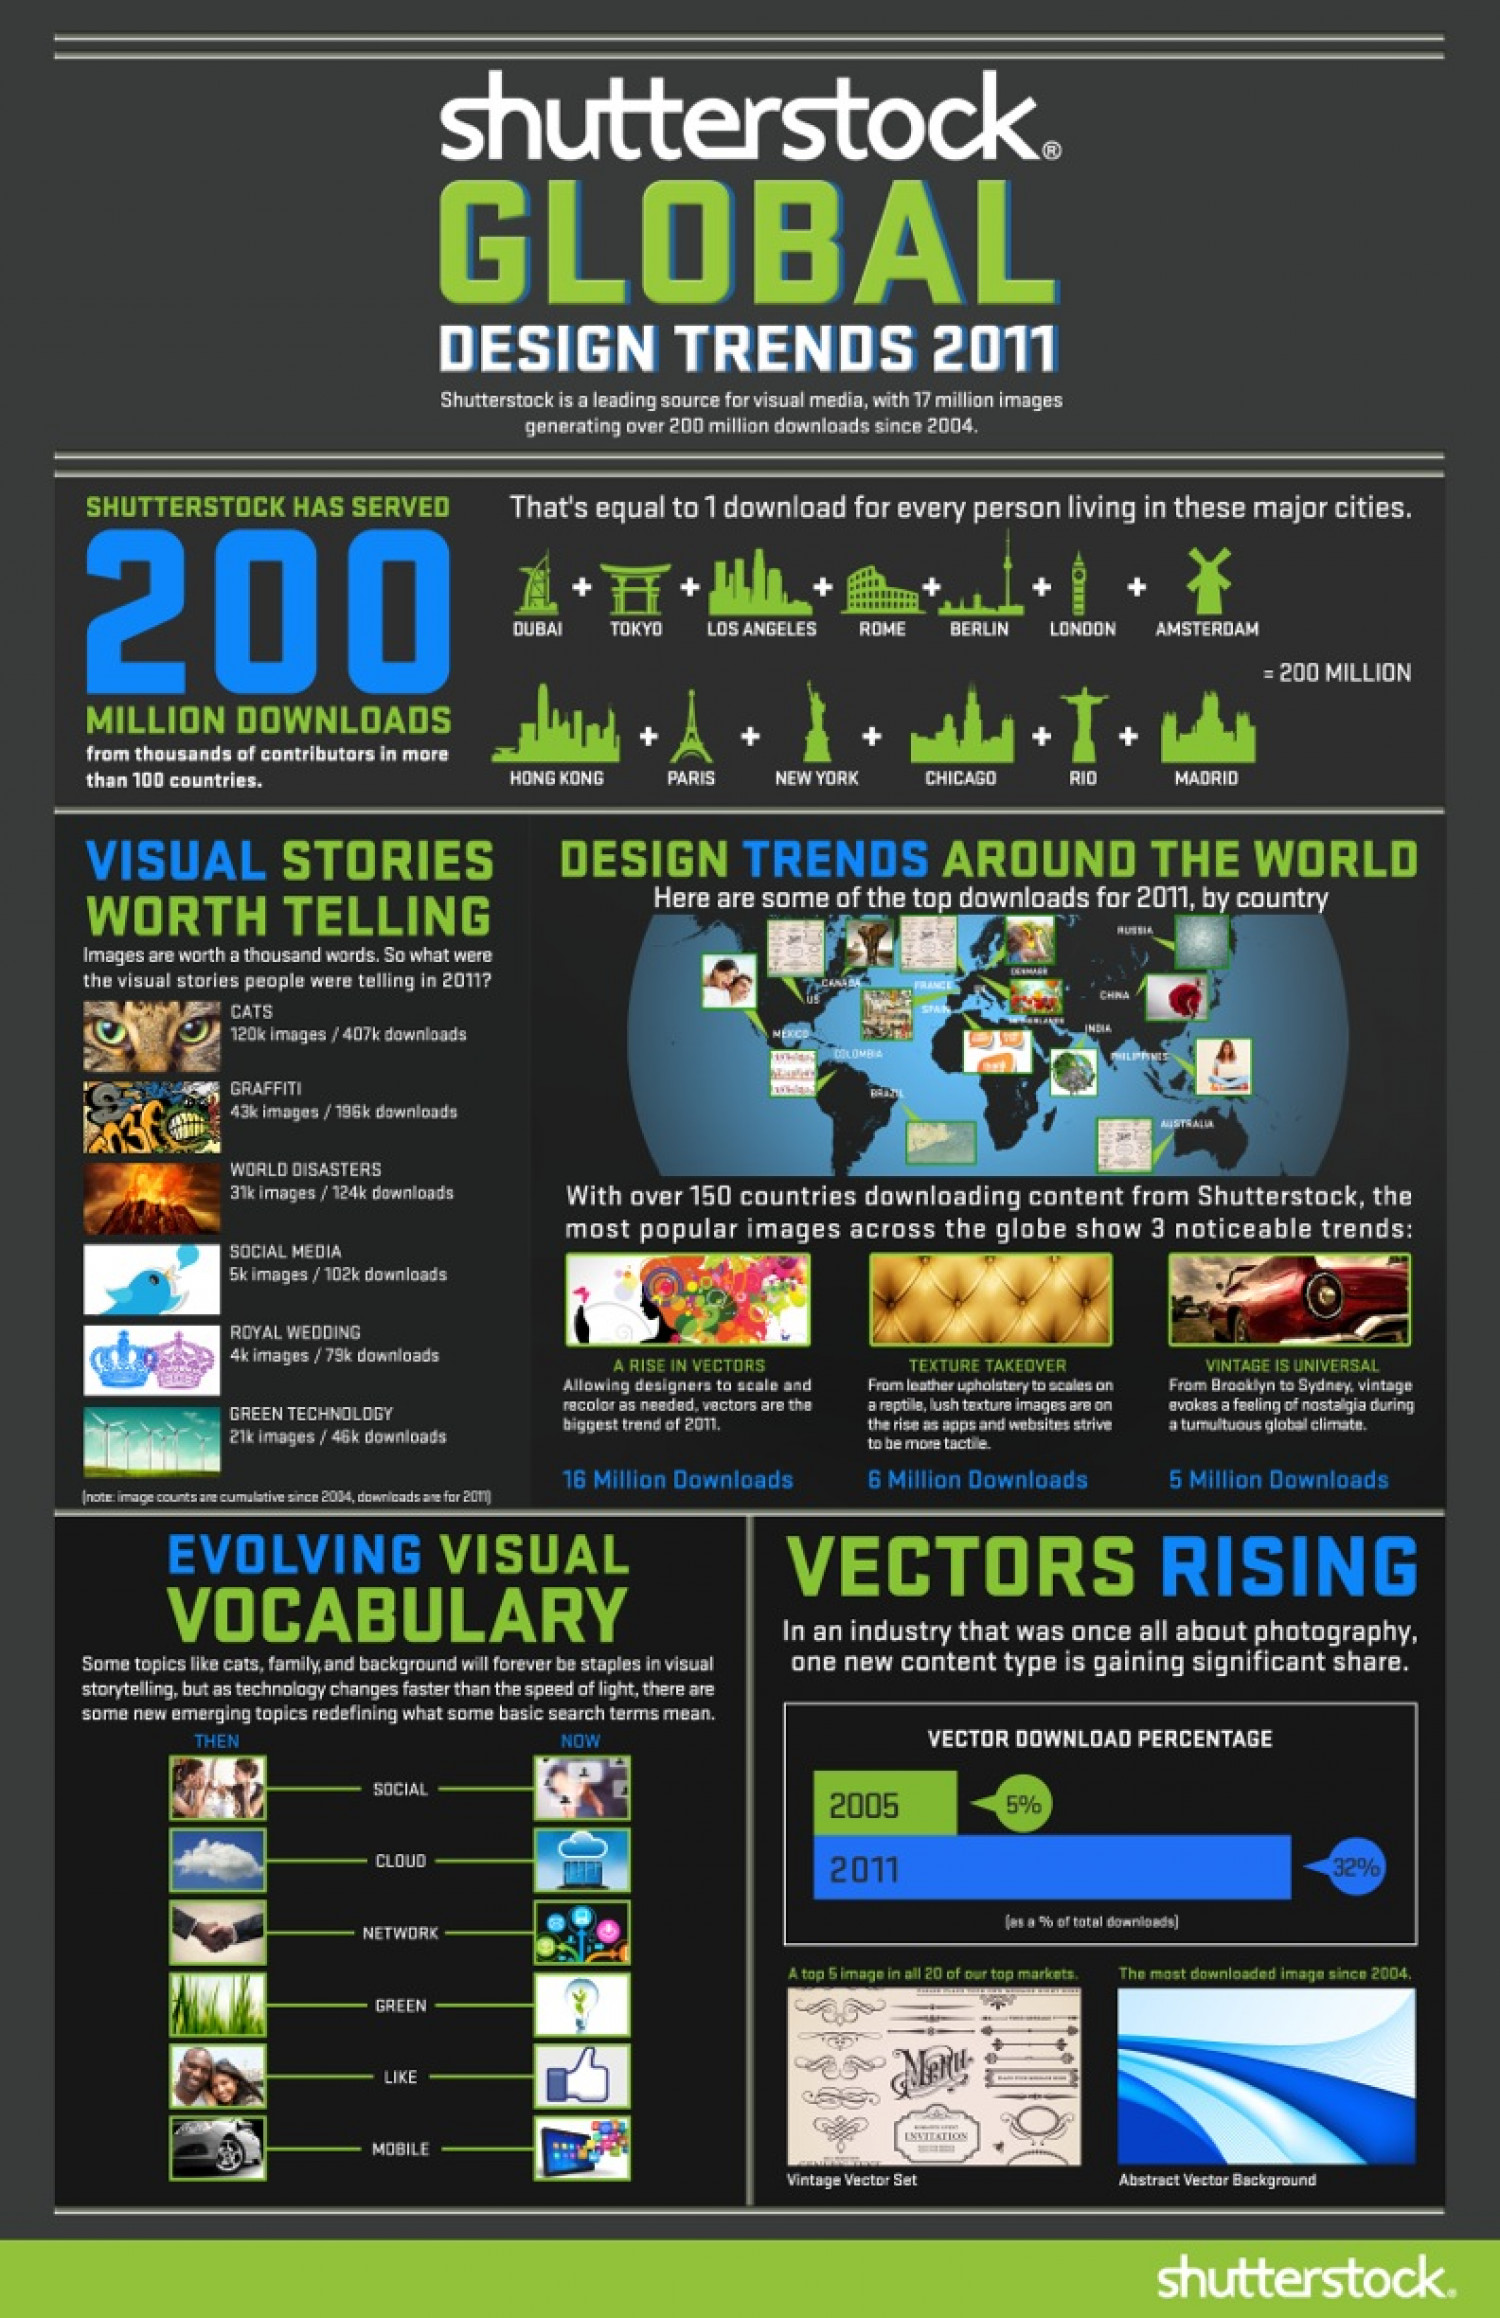 Global Design Trends 2011 Infographic